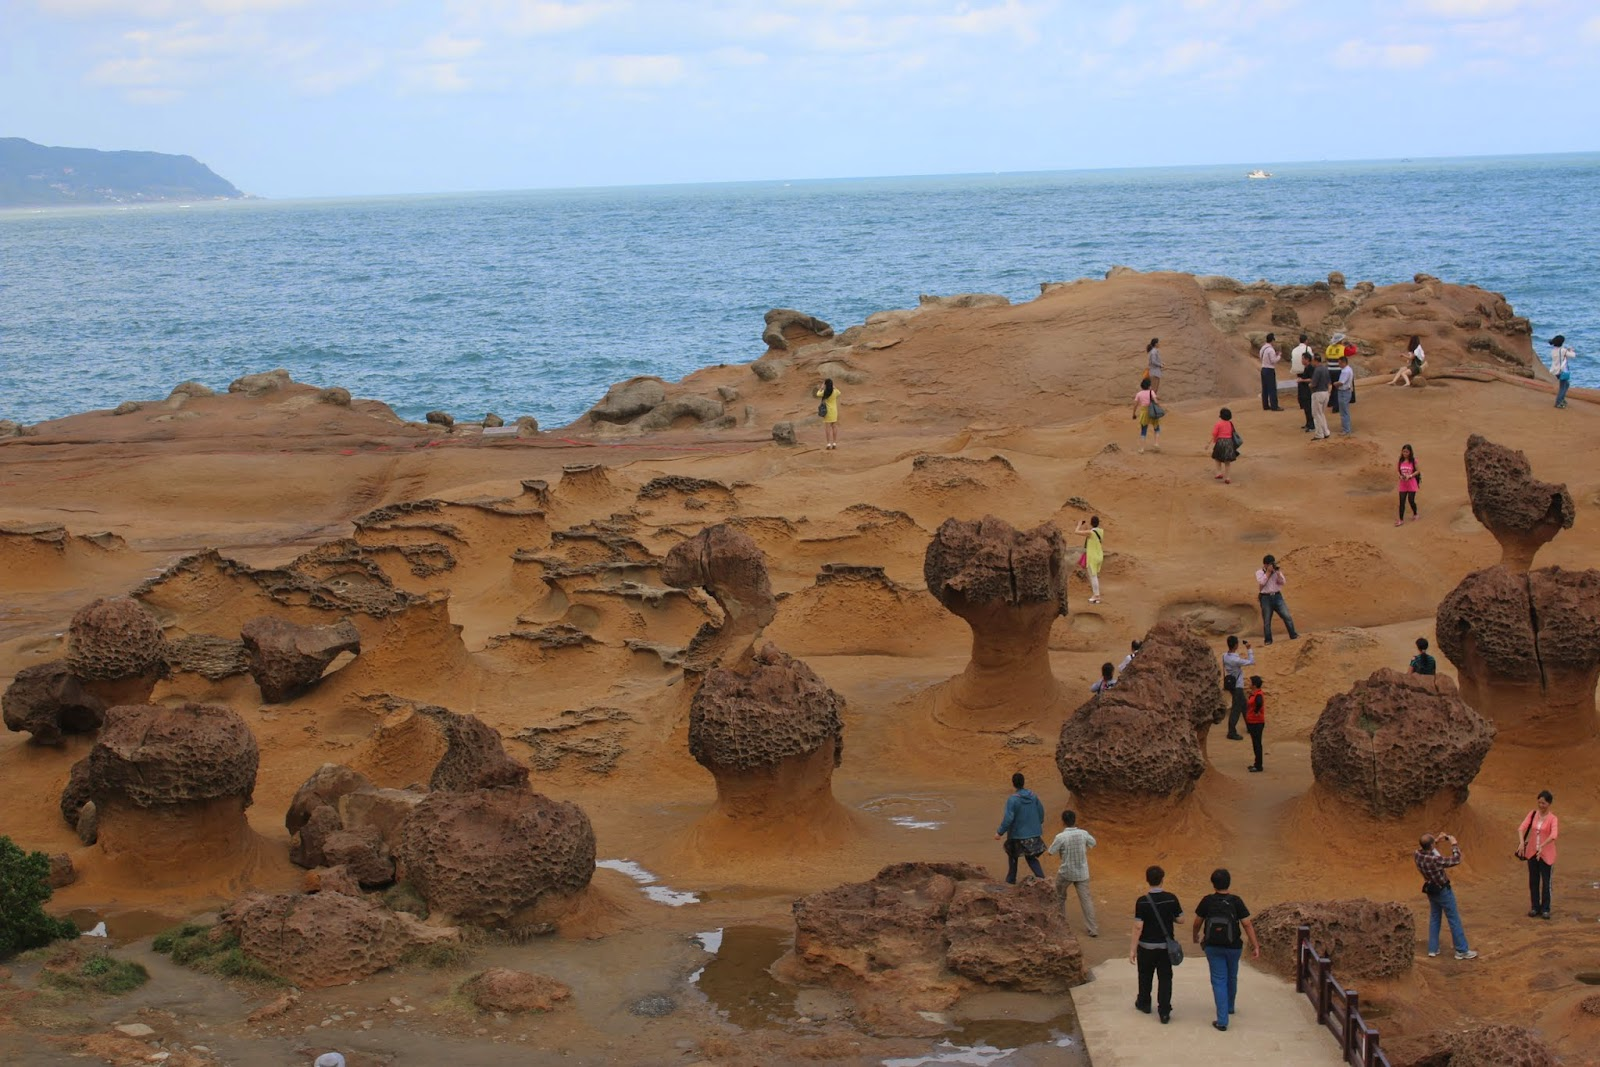 A closer view of the rocks evolution at Yehliu Geopark at Wanli of New Taipei City of Taiwan